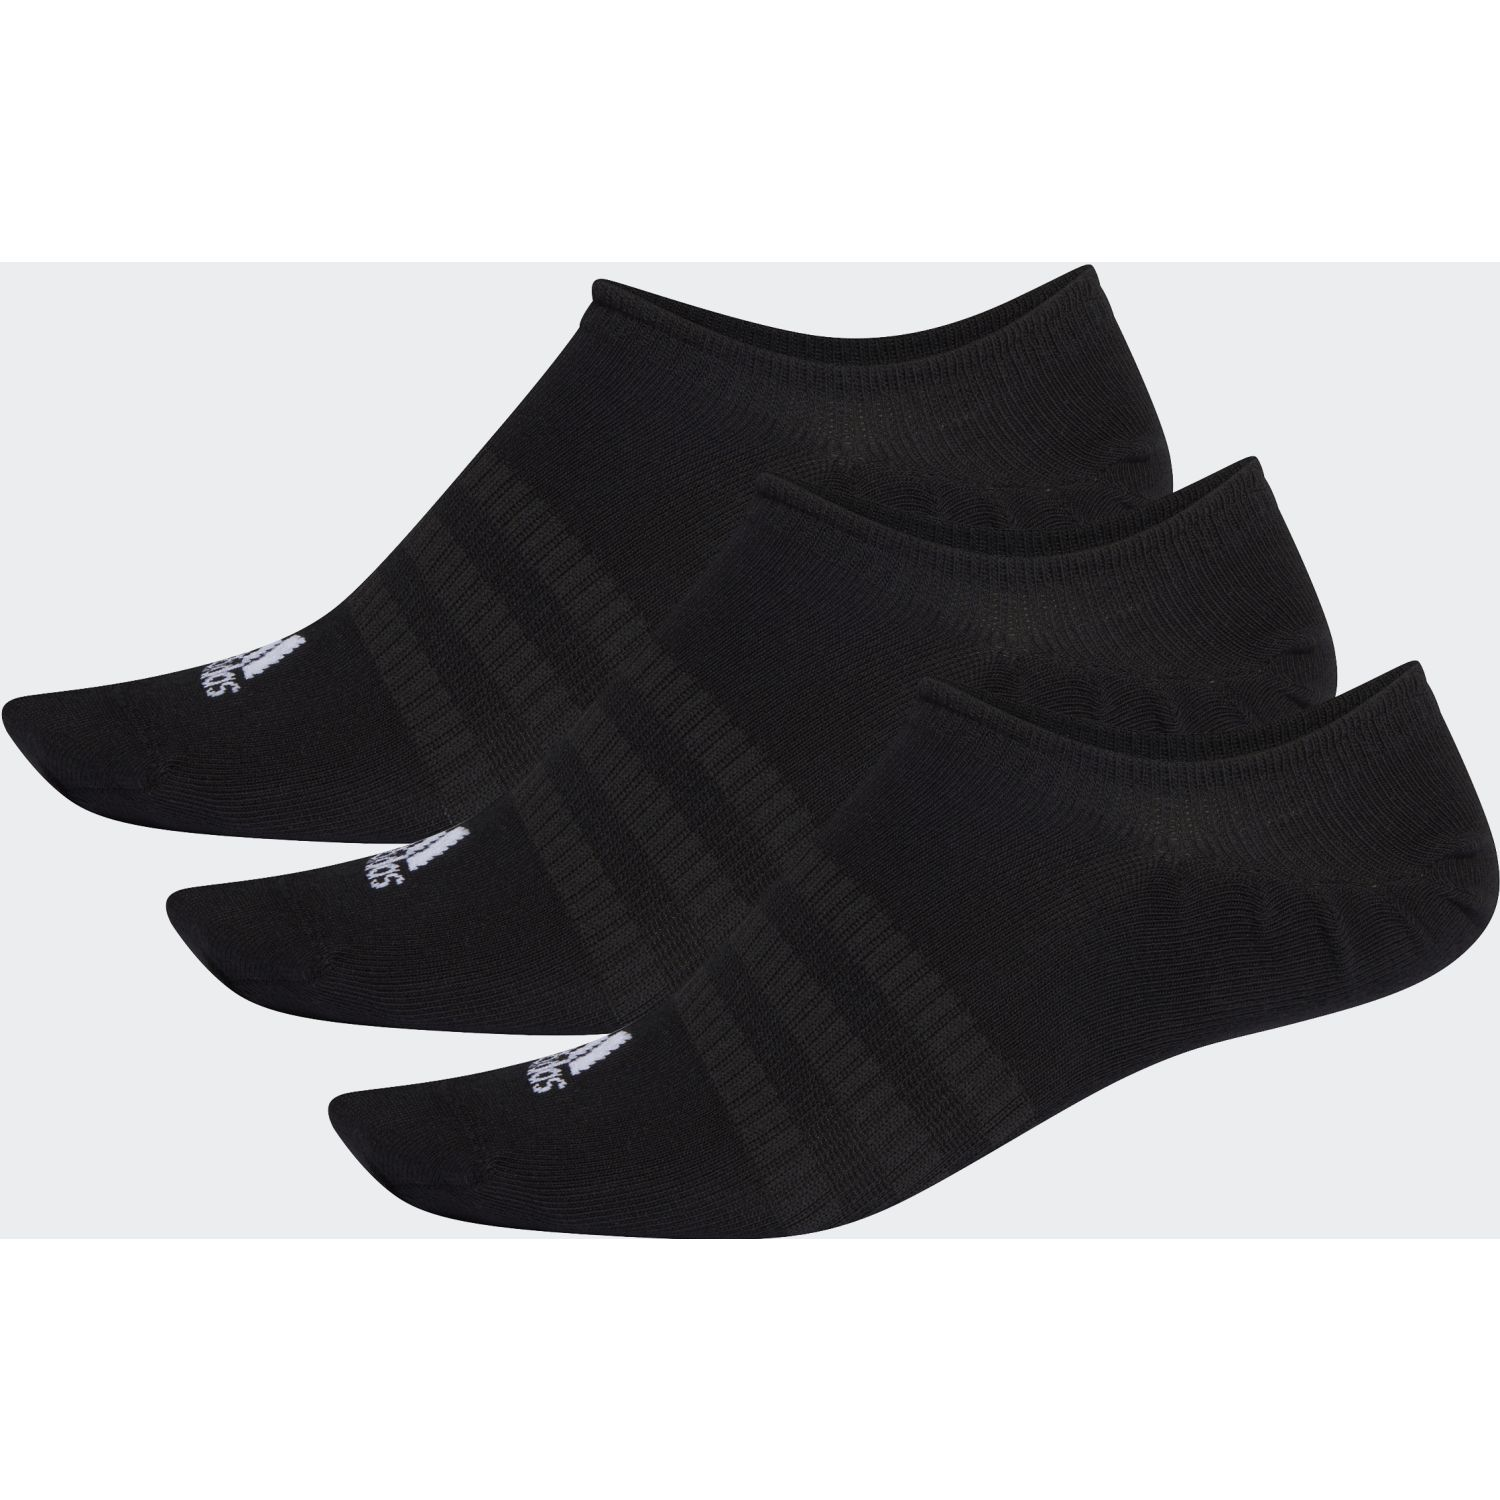 Adidas LIGHT NOSH 3PP Negro Calcetines